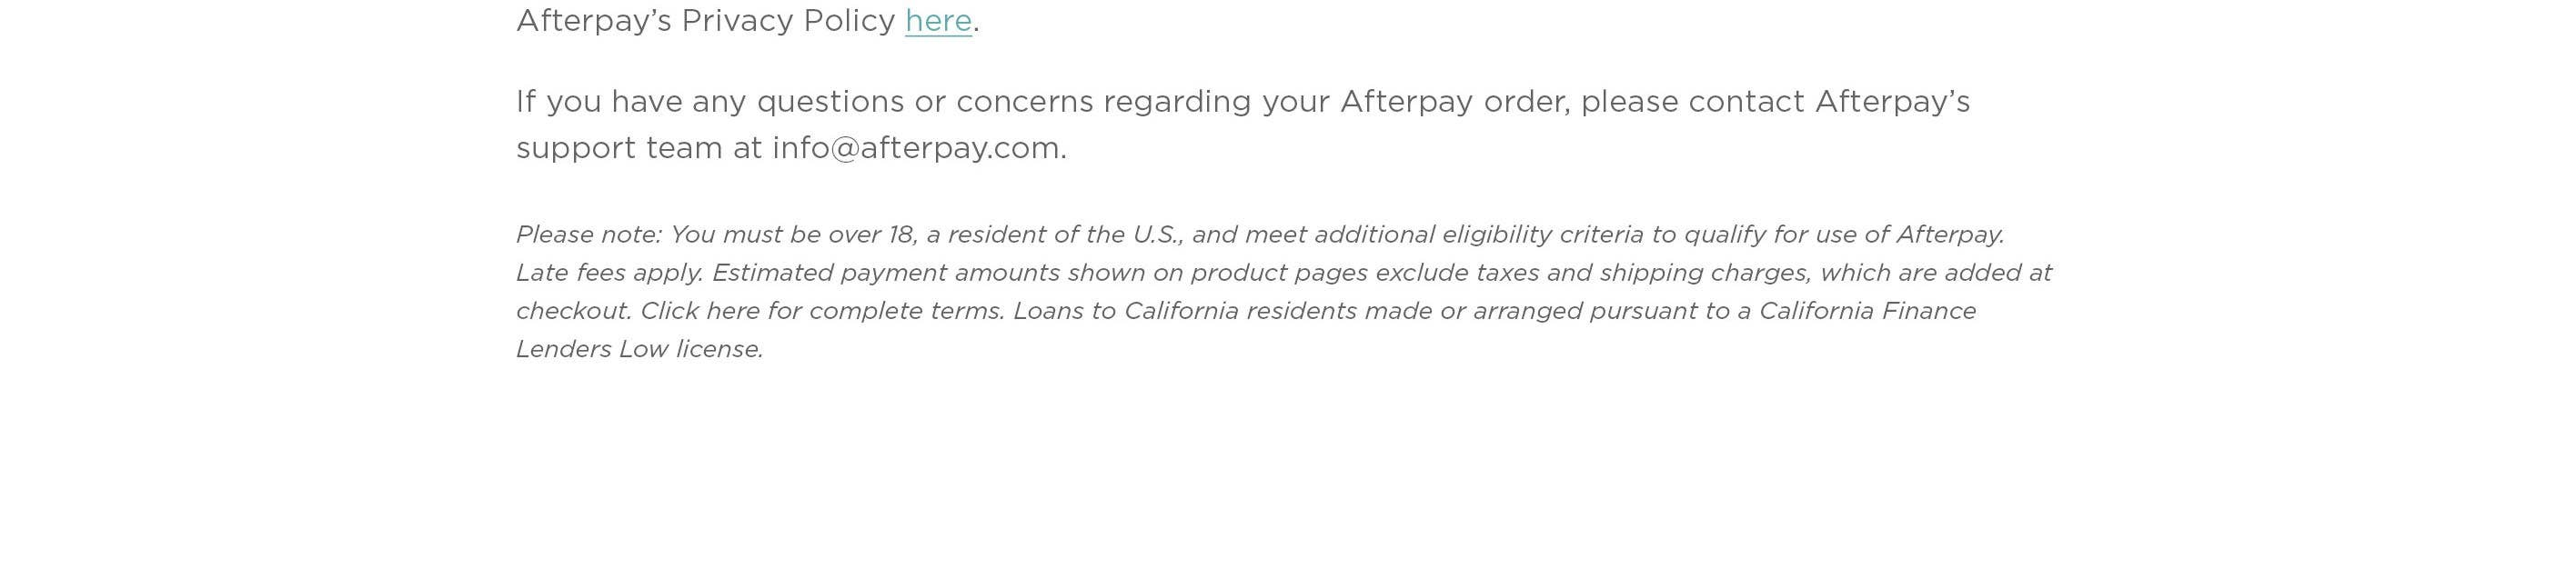 Afterpay's Privacy Policy here.  If you have any questions or concerns regarding your after pay order, please contact Afterpay's support team at info@afterpay.com.  Please note: You must be over 18, a resident of the U.S. and meet additional